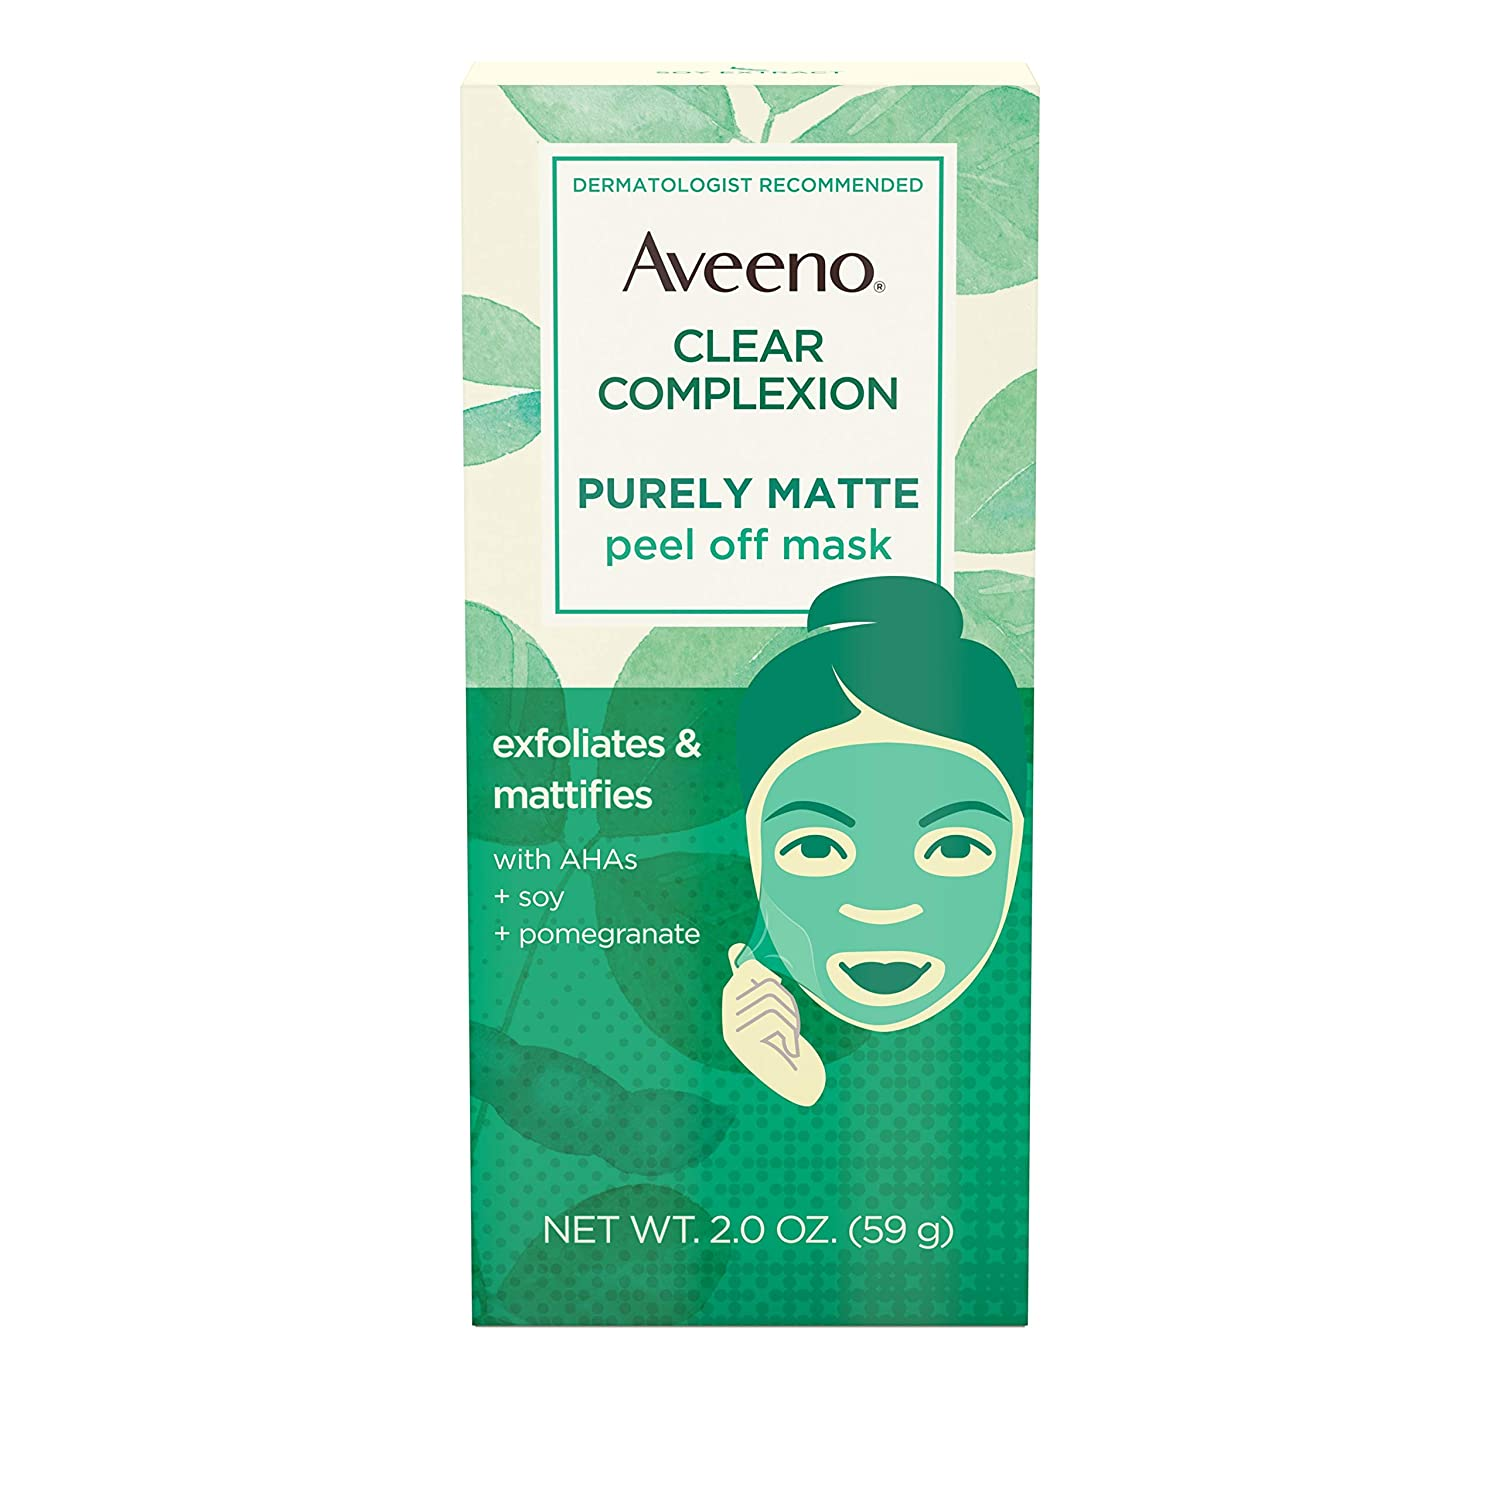 Aveeno Clear Complexion Pure Matte Peel Off Face Mask with Alpha Hydroxy Acids, Soy & Pomegranate for Clearer-Looking Skin, Non-Comedogenic, Paraben- & Phthalate-Free, 2.0 oz (Pack of 2)